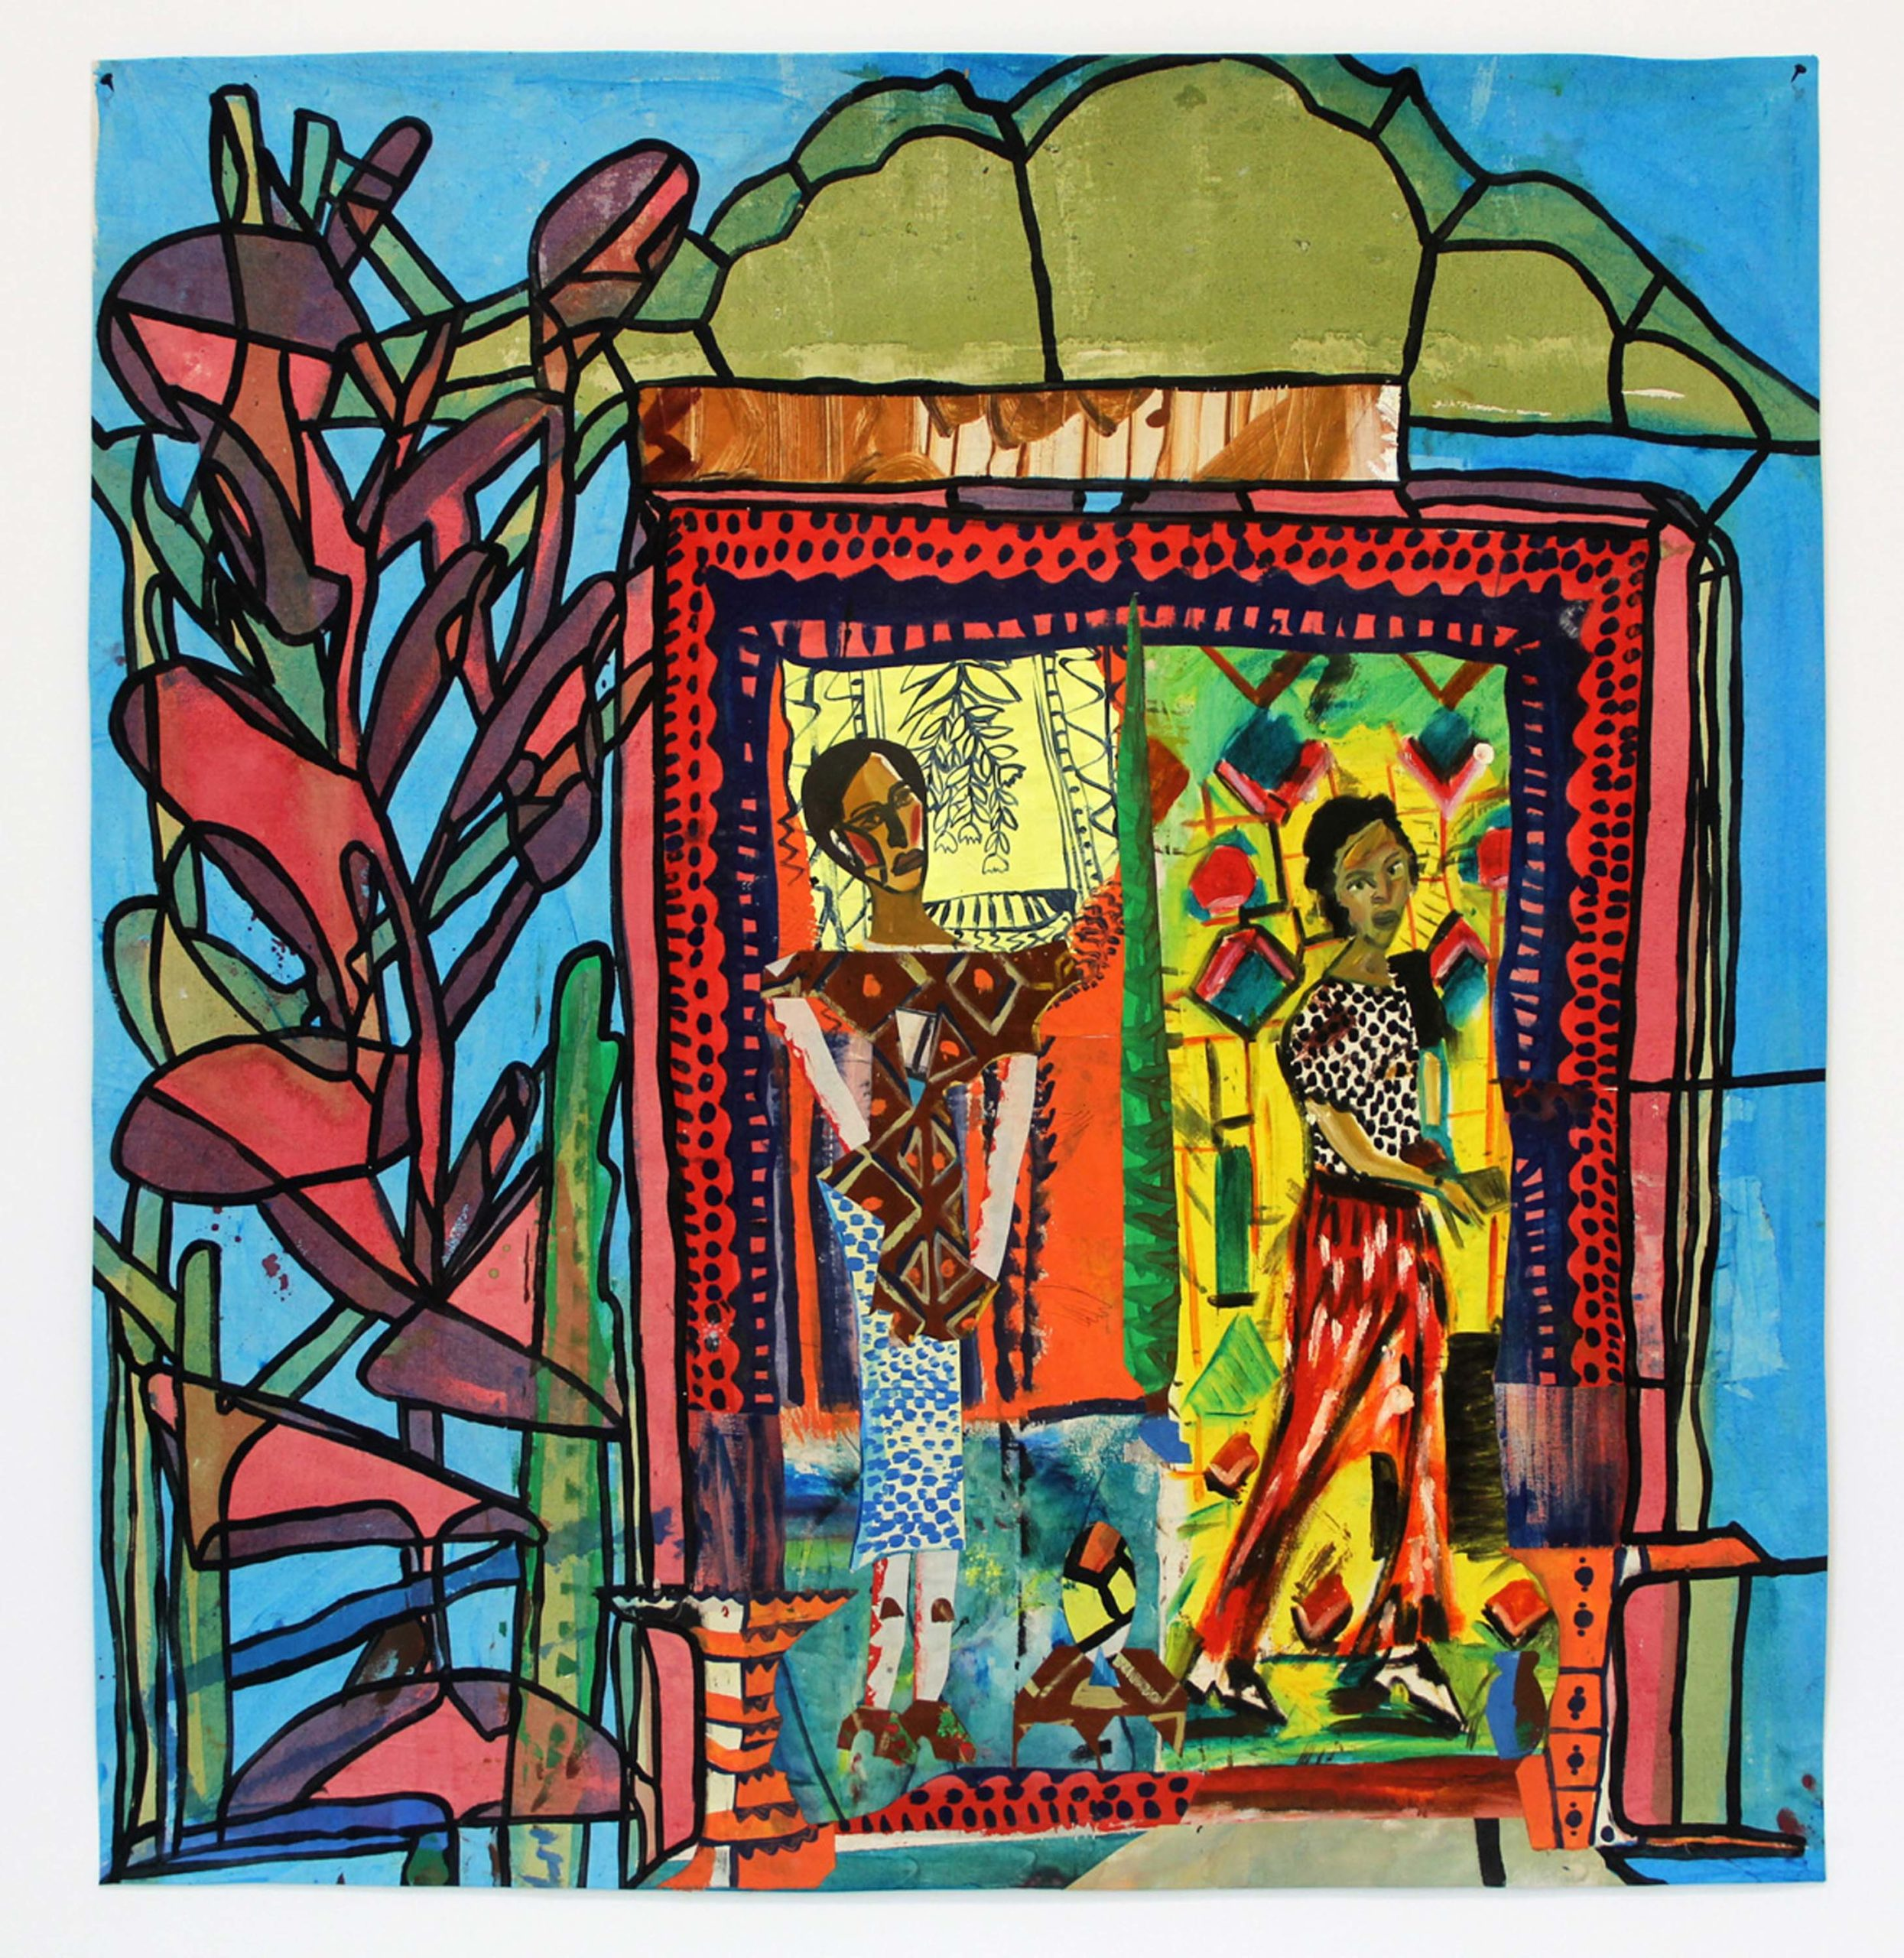 Paula Wilson, Entry to the Stain Glass Row, 2017